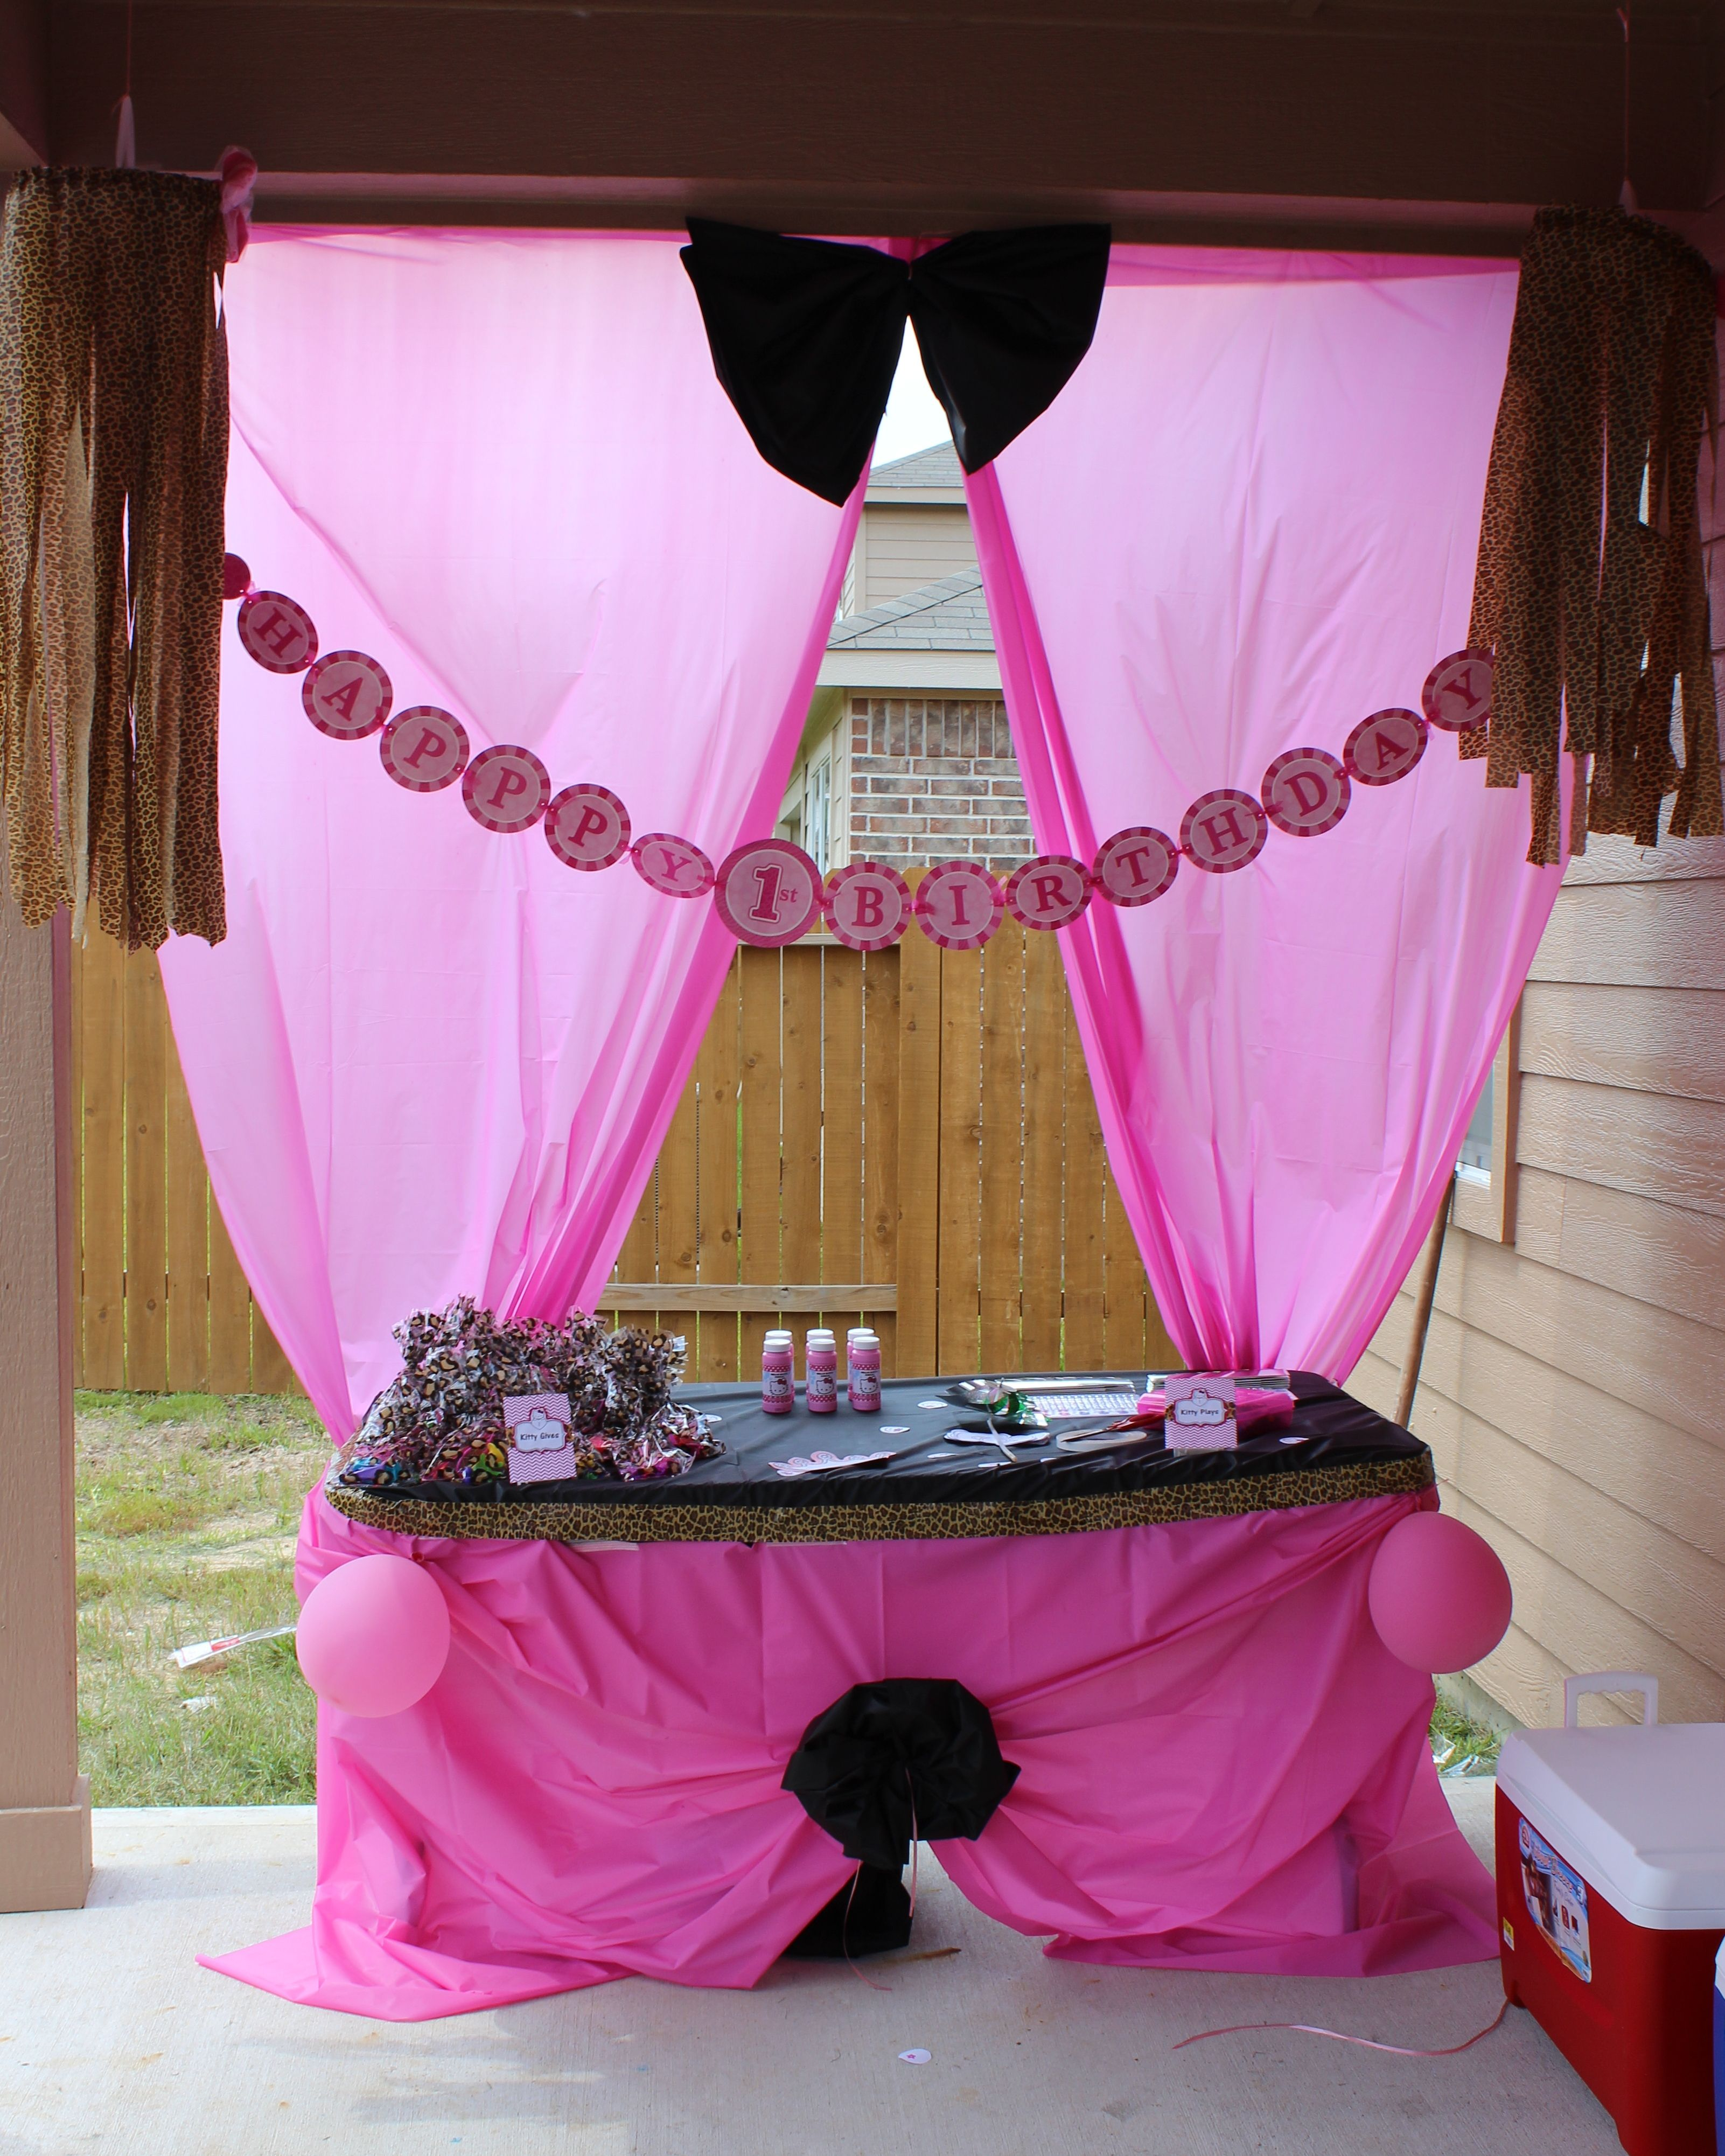 Cheetah Hello Kitty Decorations Using $.97 Tablecloths, Cheetah Ductape,  And Streamers And Balloons. Used Tablecloths Like Fabric To Make The  Tableskirt, ...